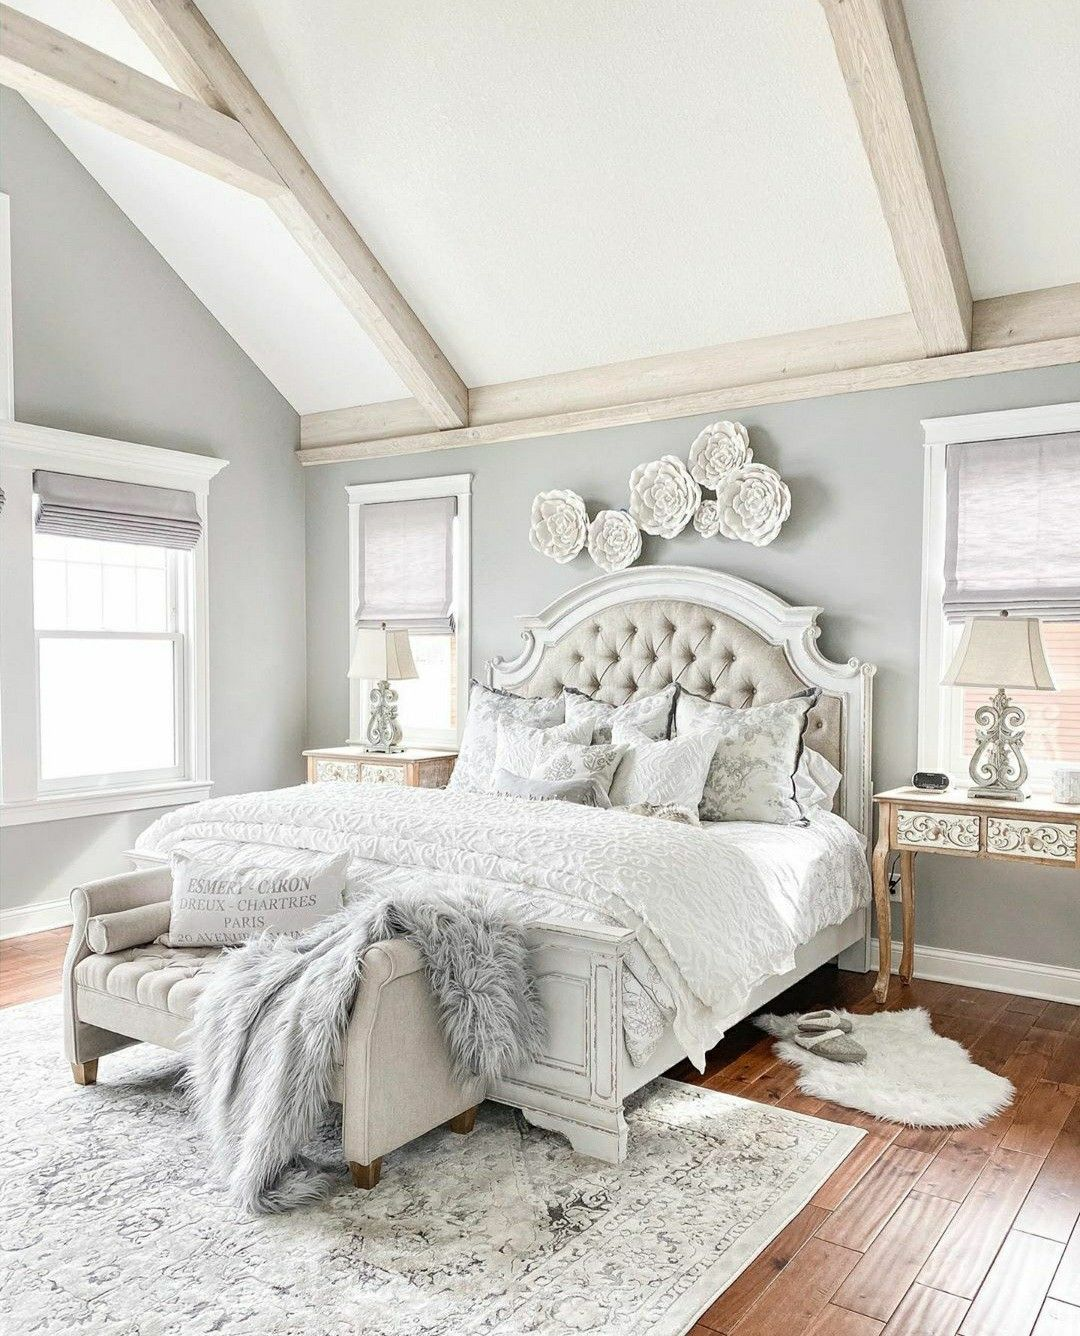 Pin by Sterling Roses Blog on Bedrooms in 2020 Glam